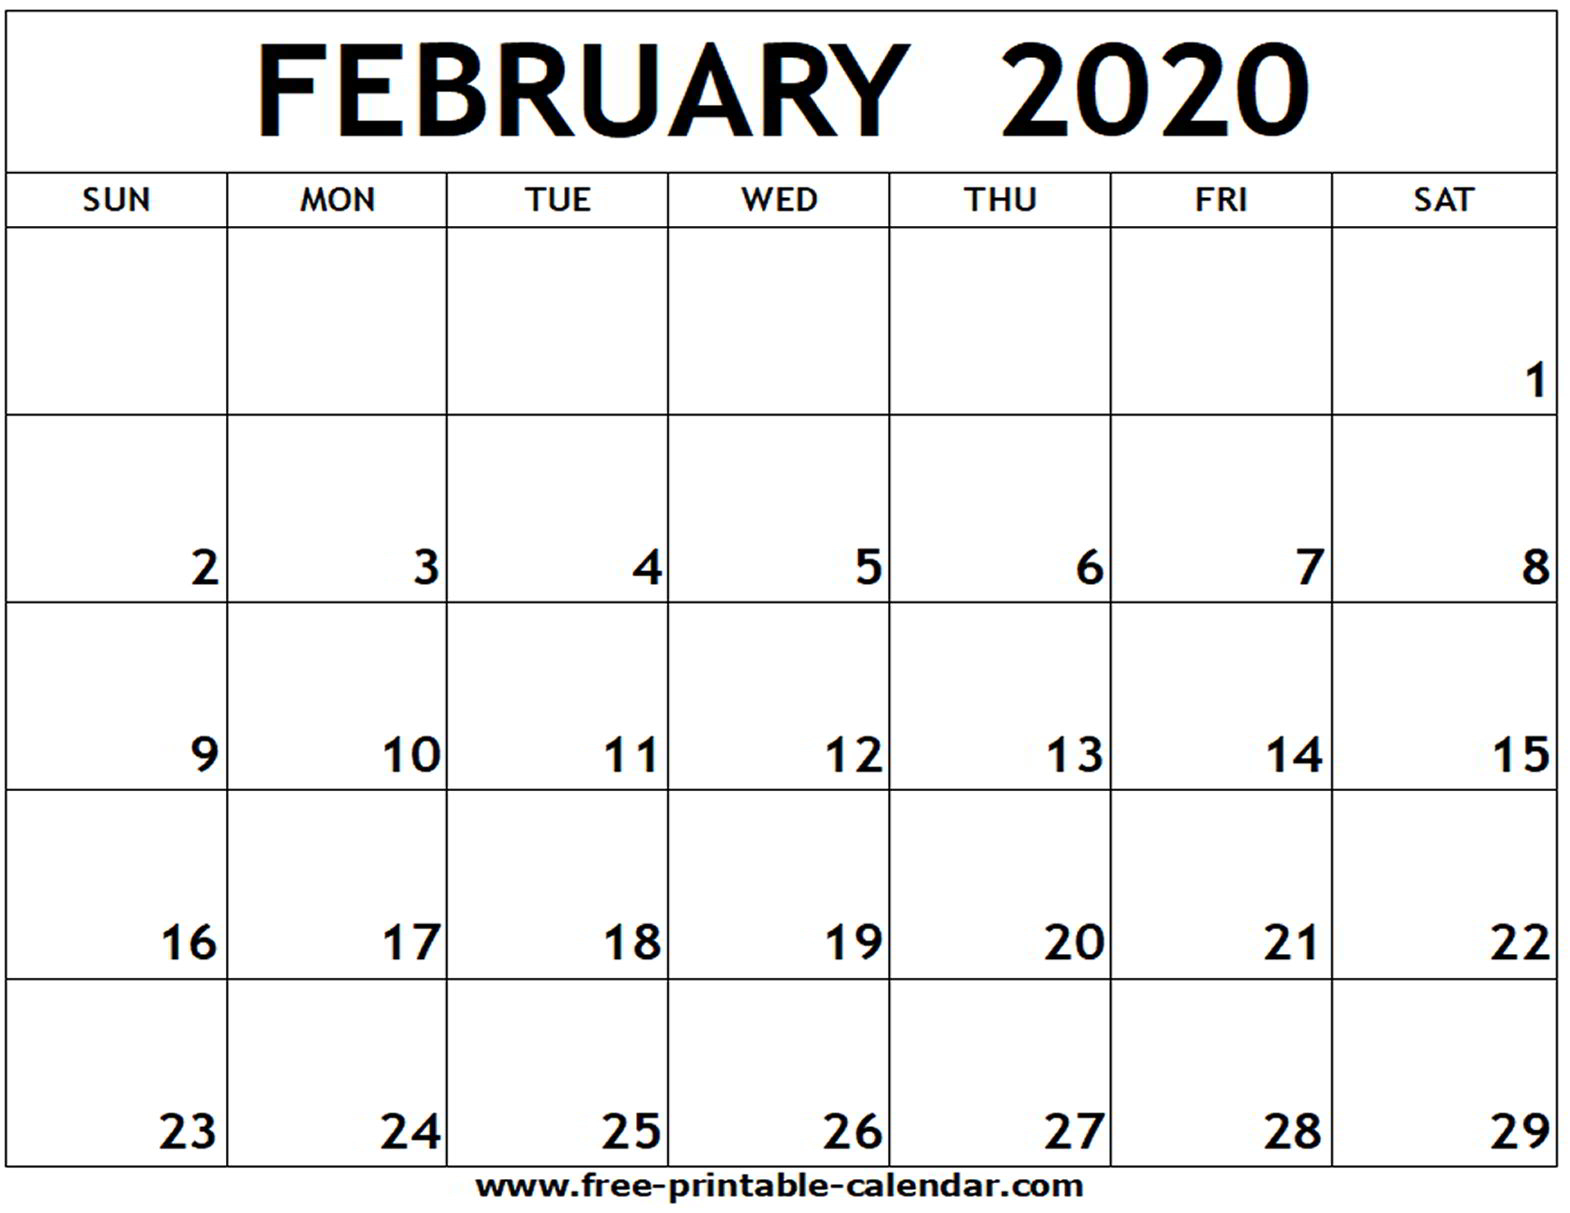 Blank Calendar For February 2020 - Yeter.wpart.co